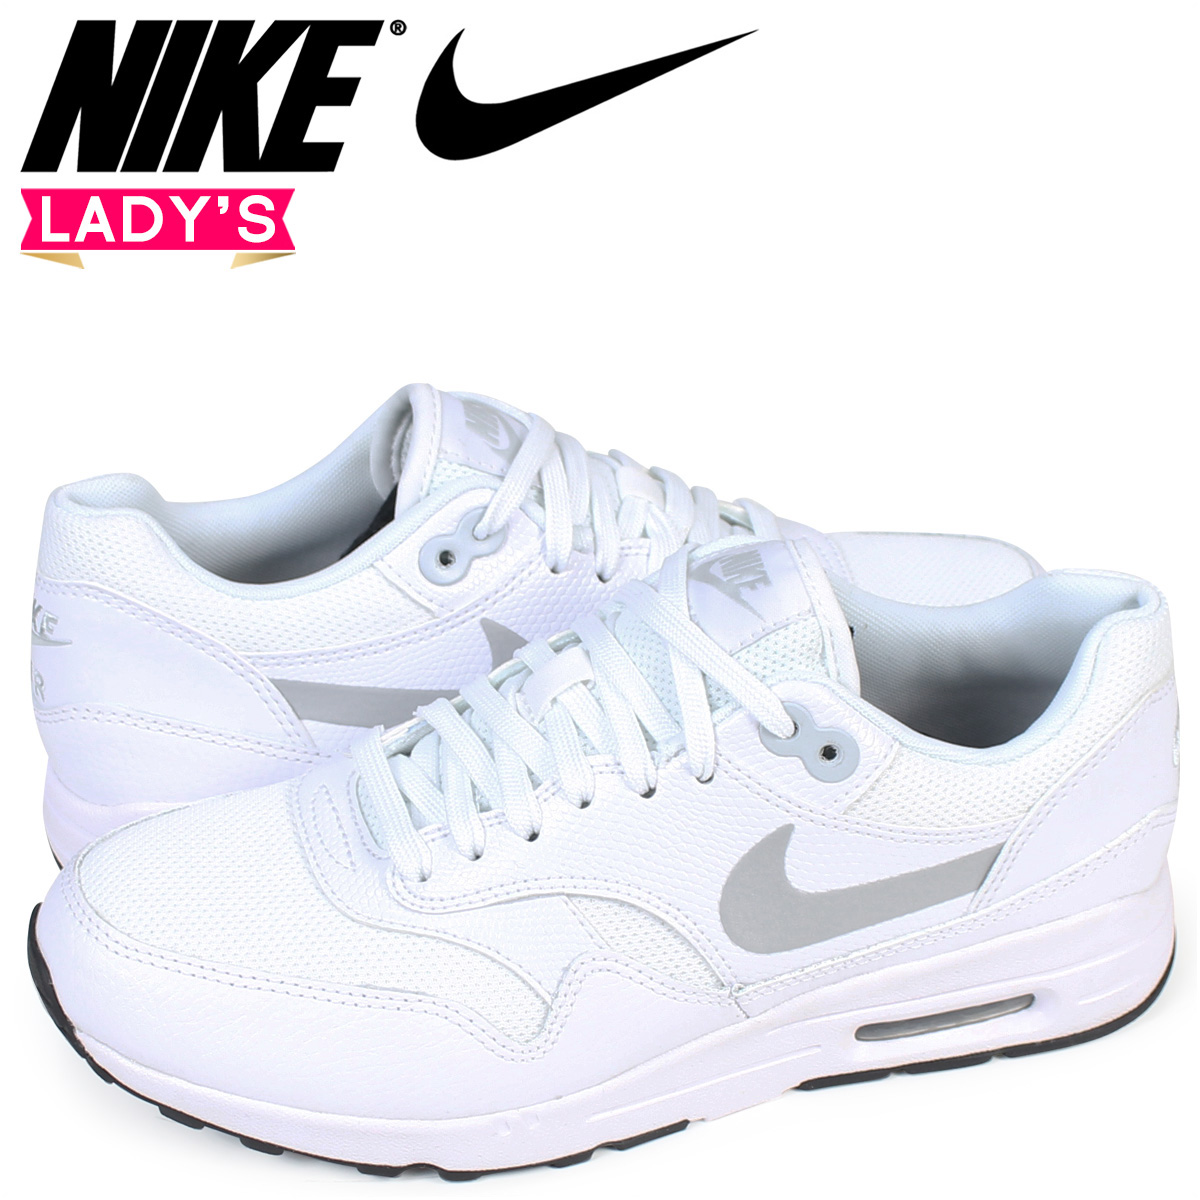 1 Air Lady's Wmns 100 Ultra Nike Sneakers 2 0 White 881 104 Max hrtsxQdC